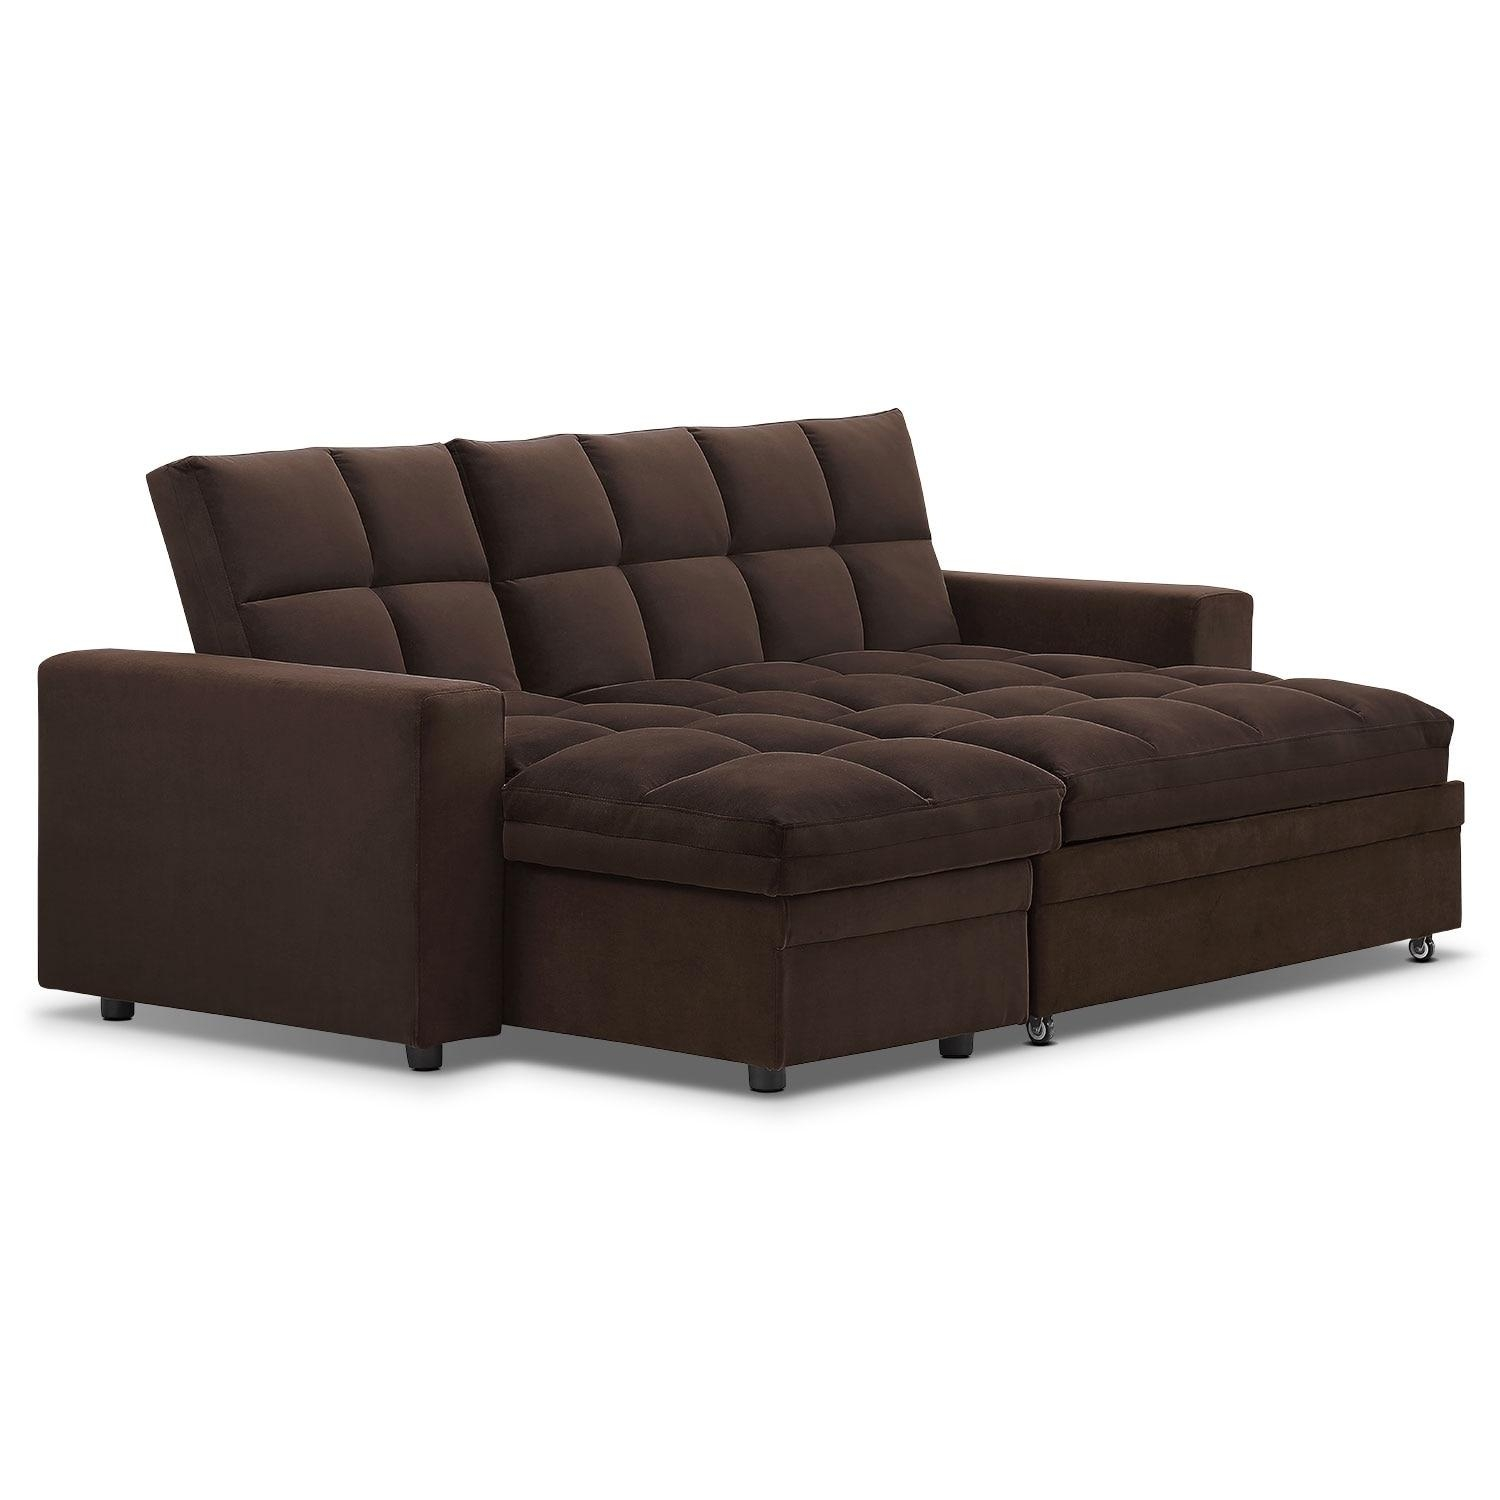 Metro Chaise Sofa Bed With Storage – Brown   American Signature Throughout Chaise Sofa Chairs (Image 16 of 20)